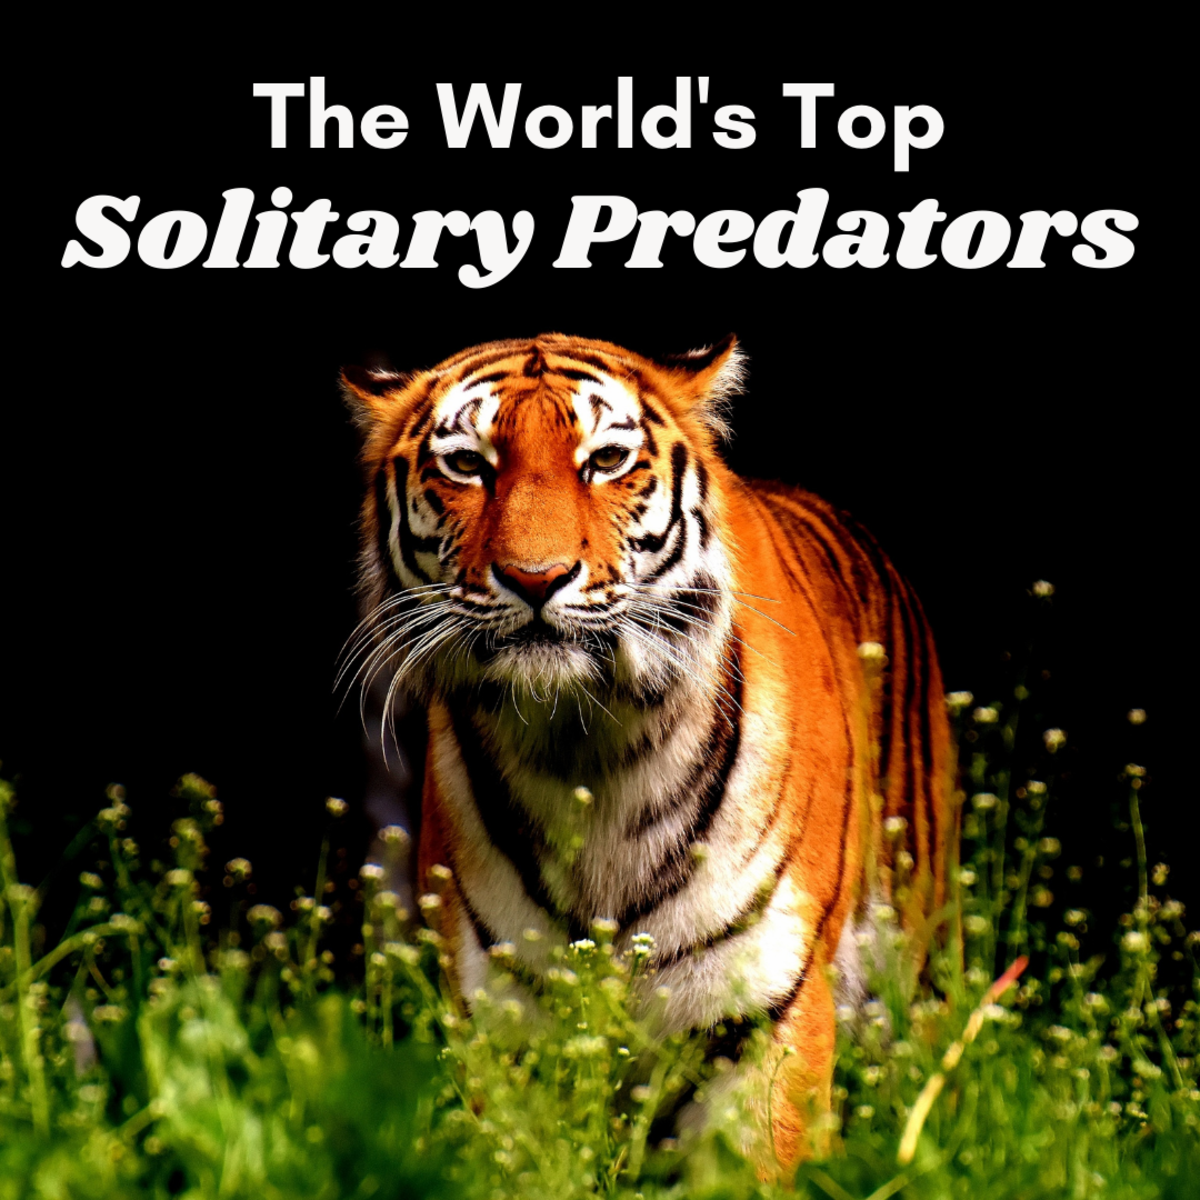 These five solitary hunters are terrifying predators that you wouldn't want to find yourself alone with! Read on to find out the scientific names and a few cool facts about each.